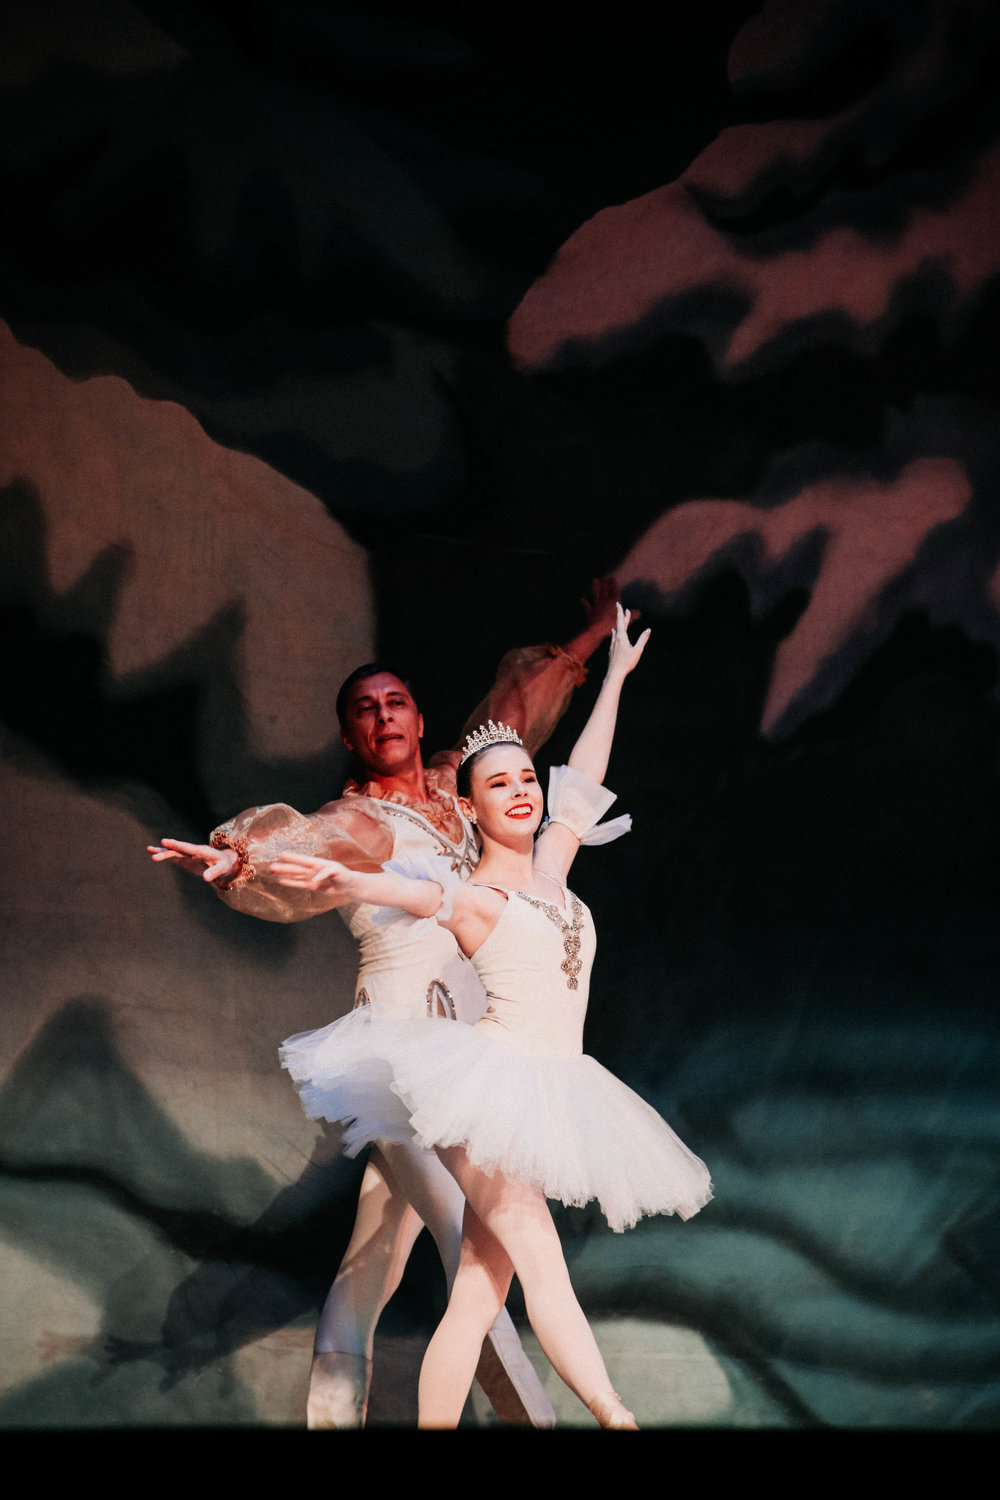 nutcracker17 (15 of 64).jpg